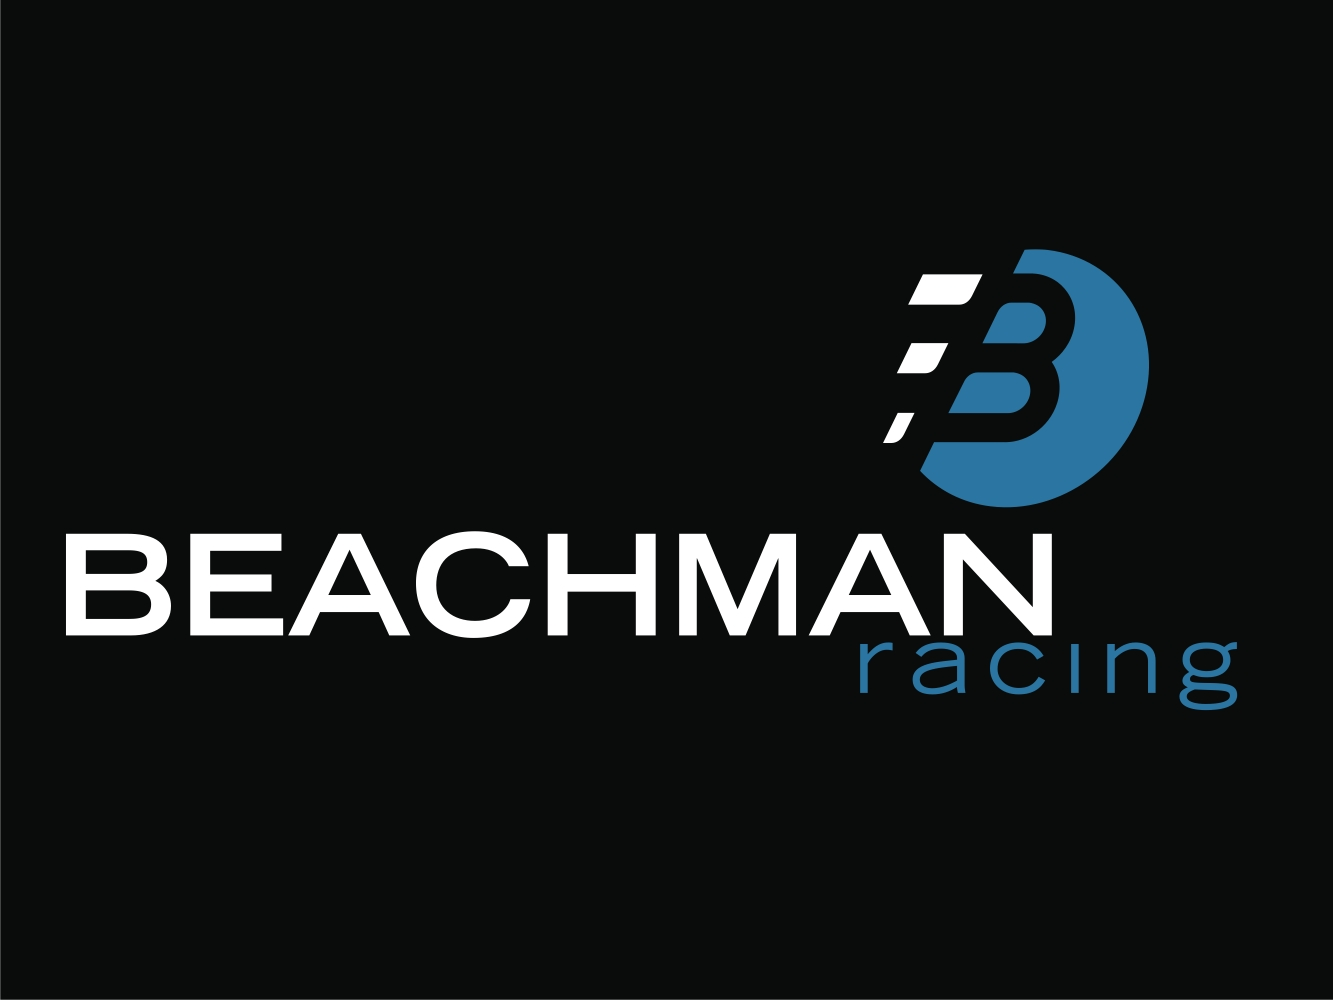 Beachman Racing